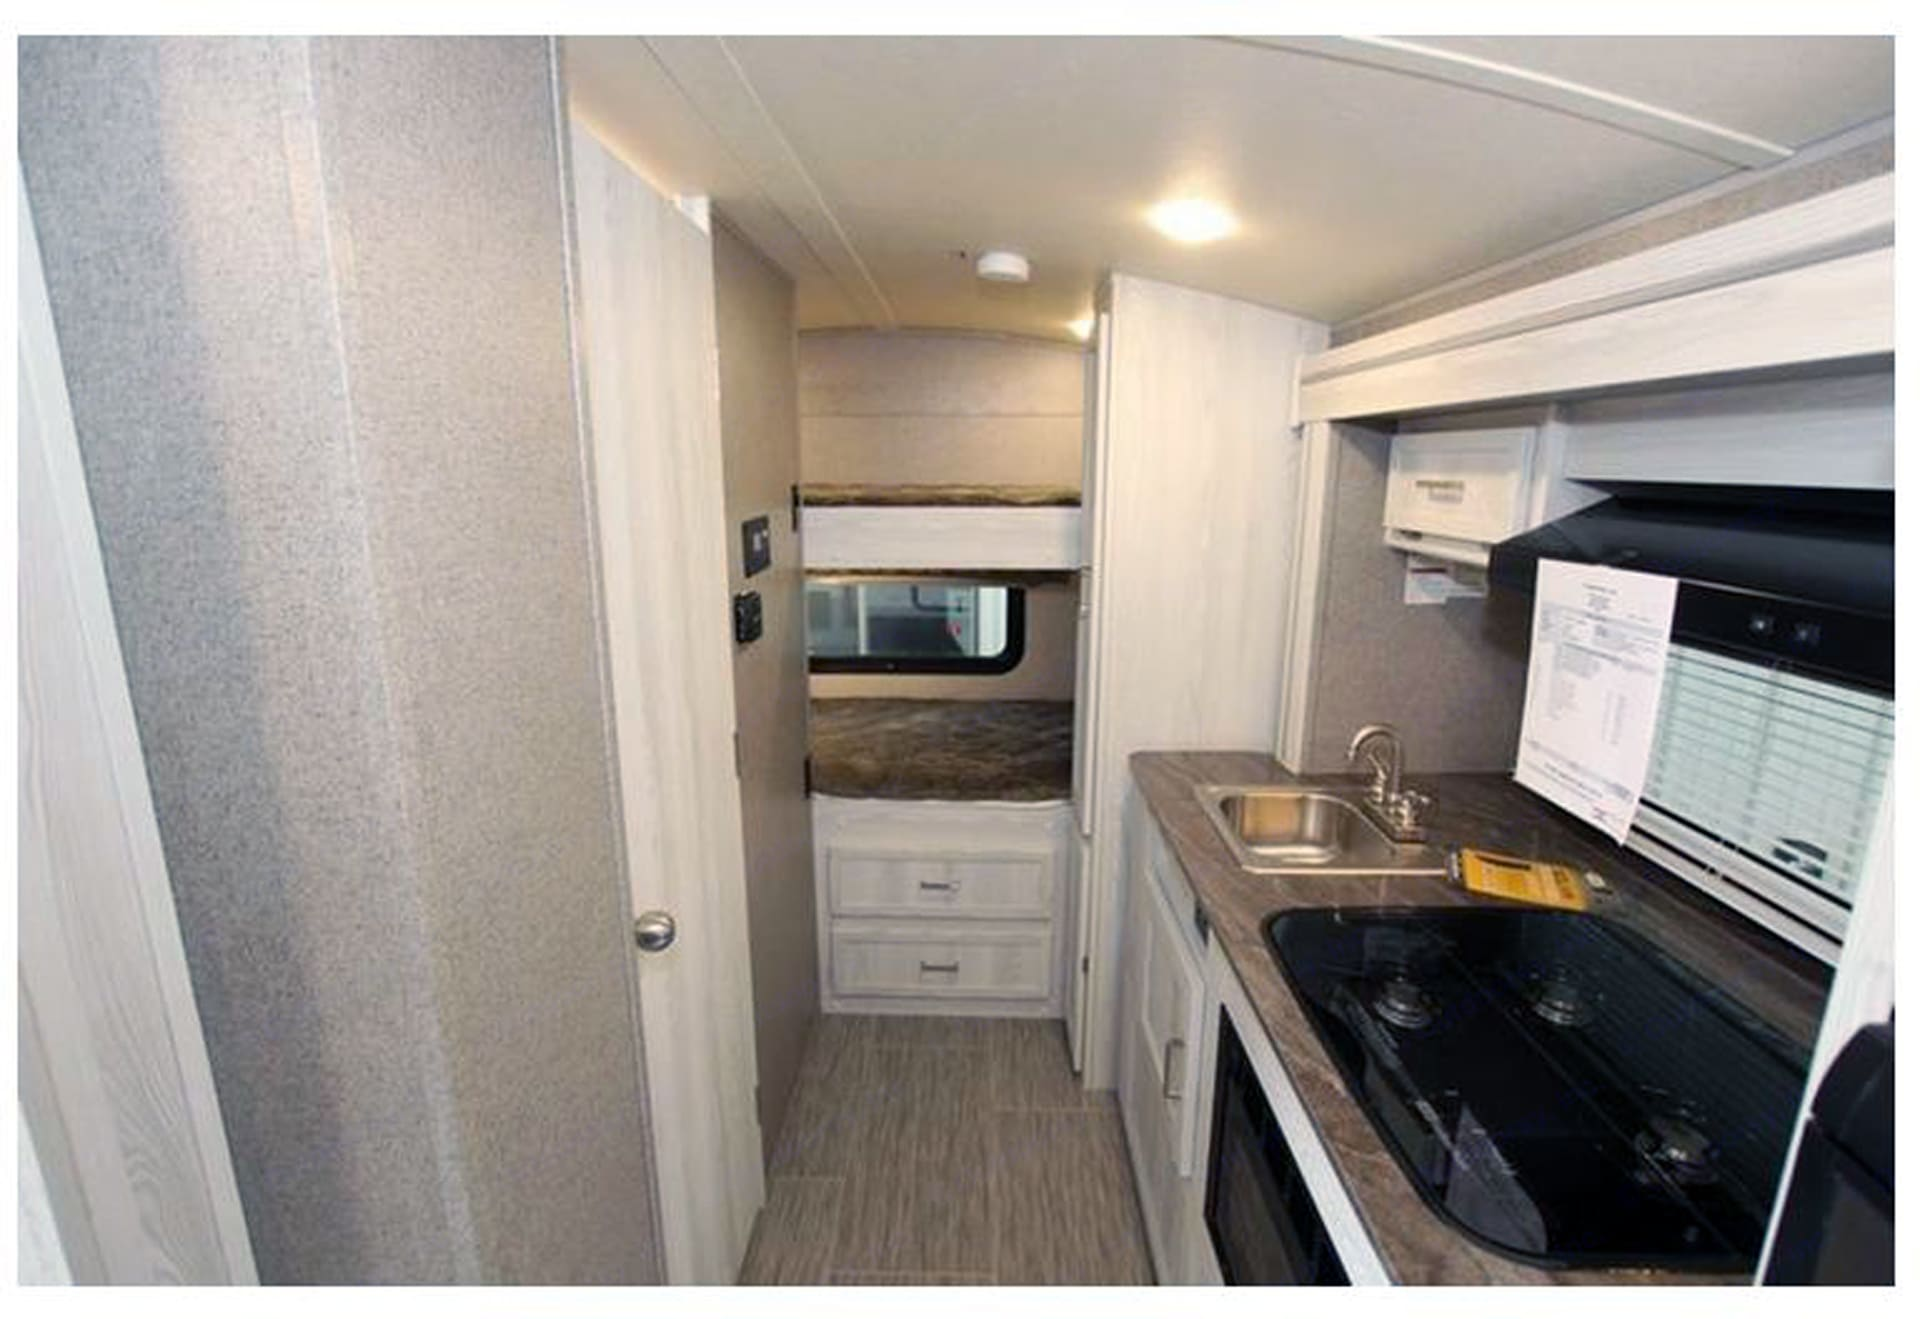 Rear view showing bunks and slide-out kitchen area. Flagstaff E-Pro E16BH 2018